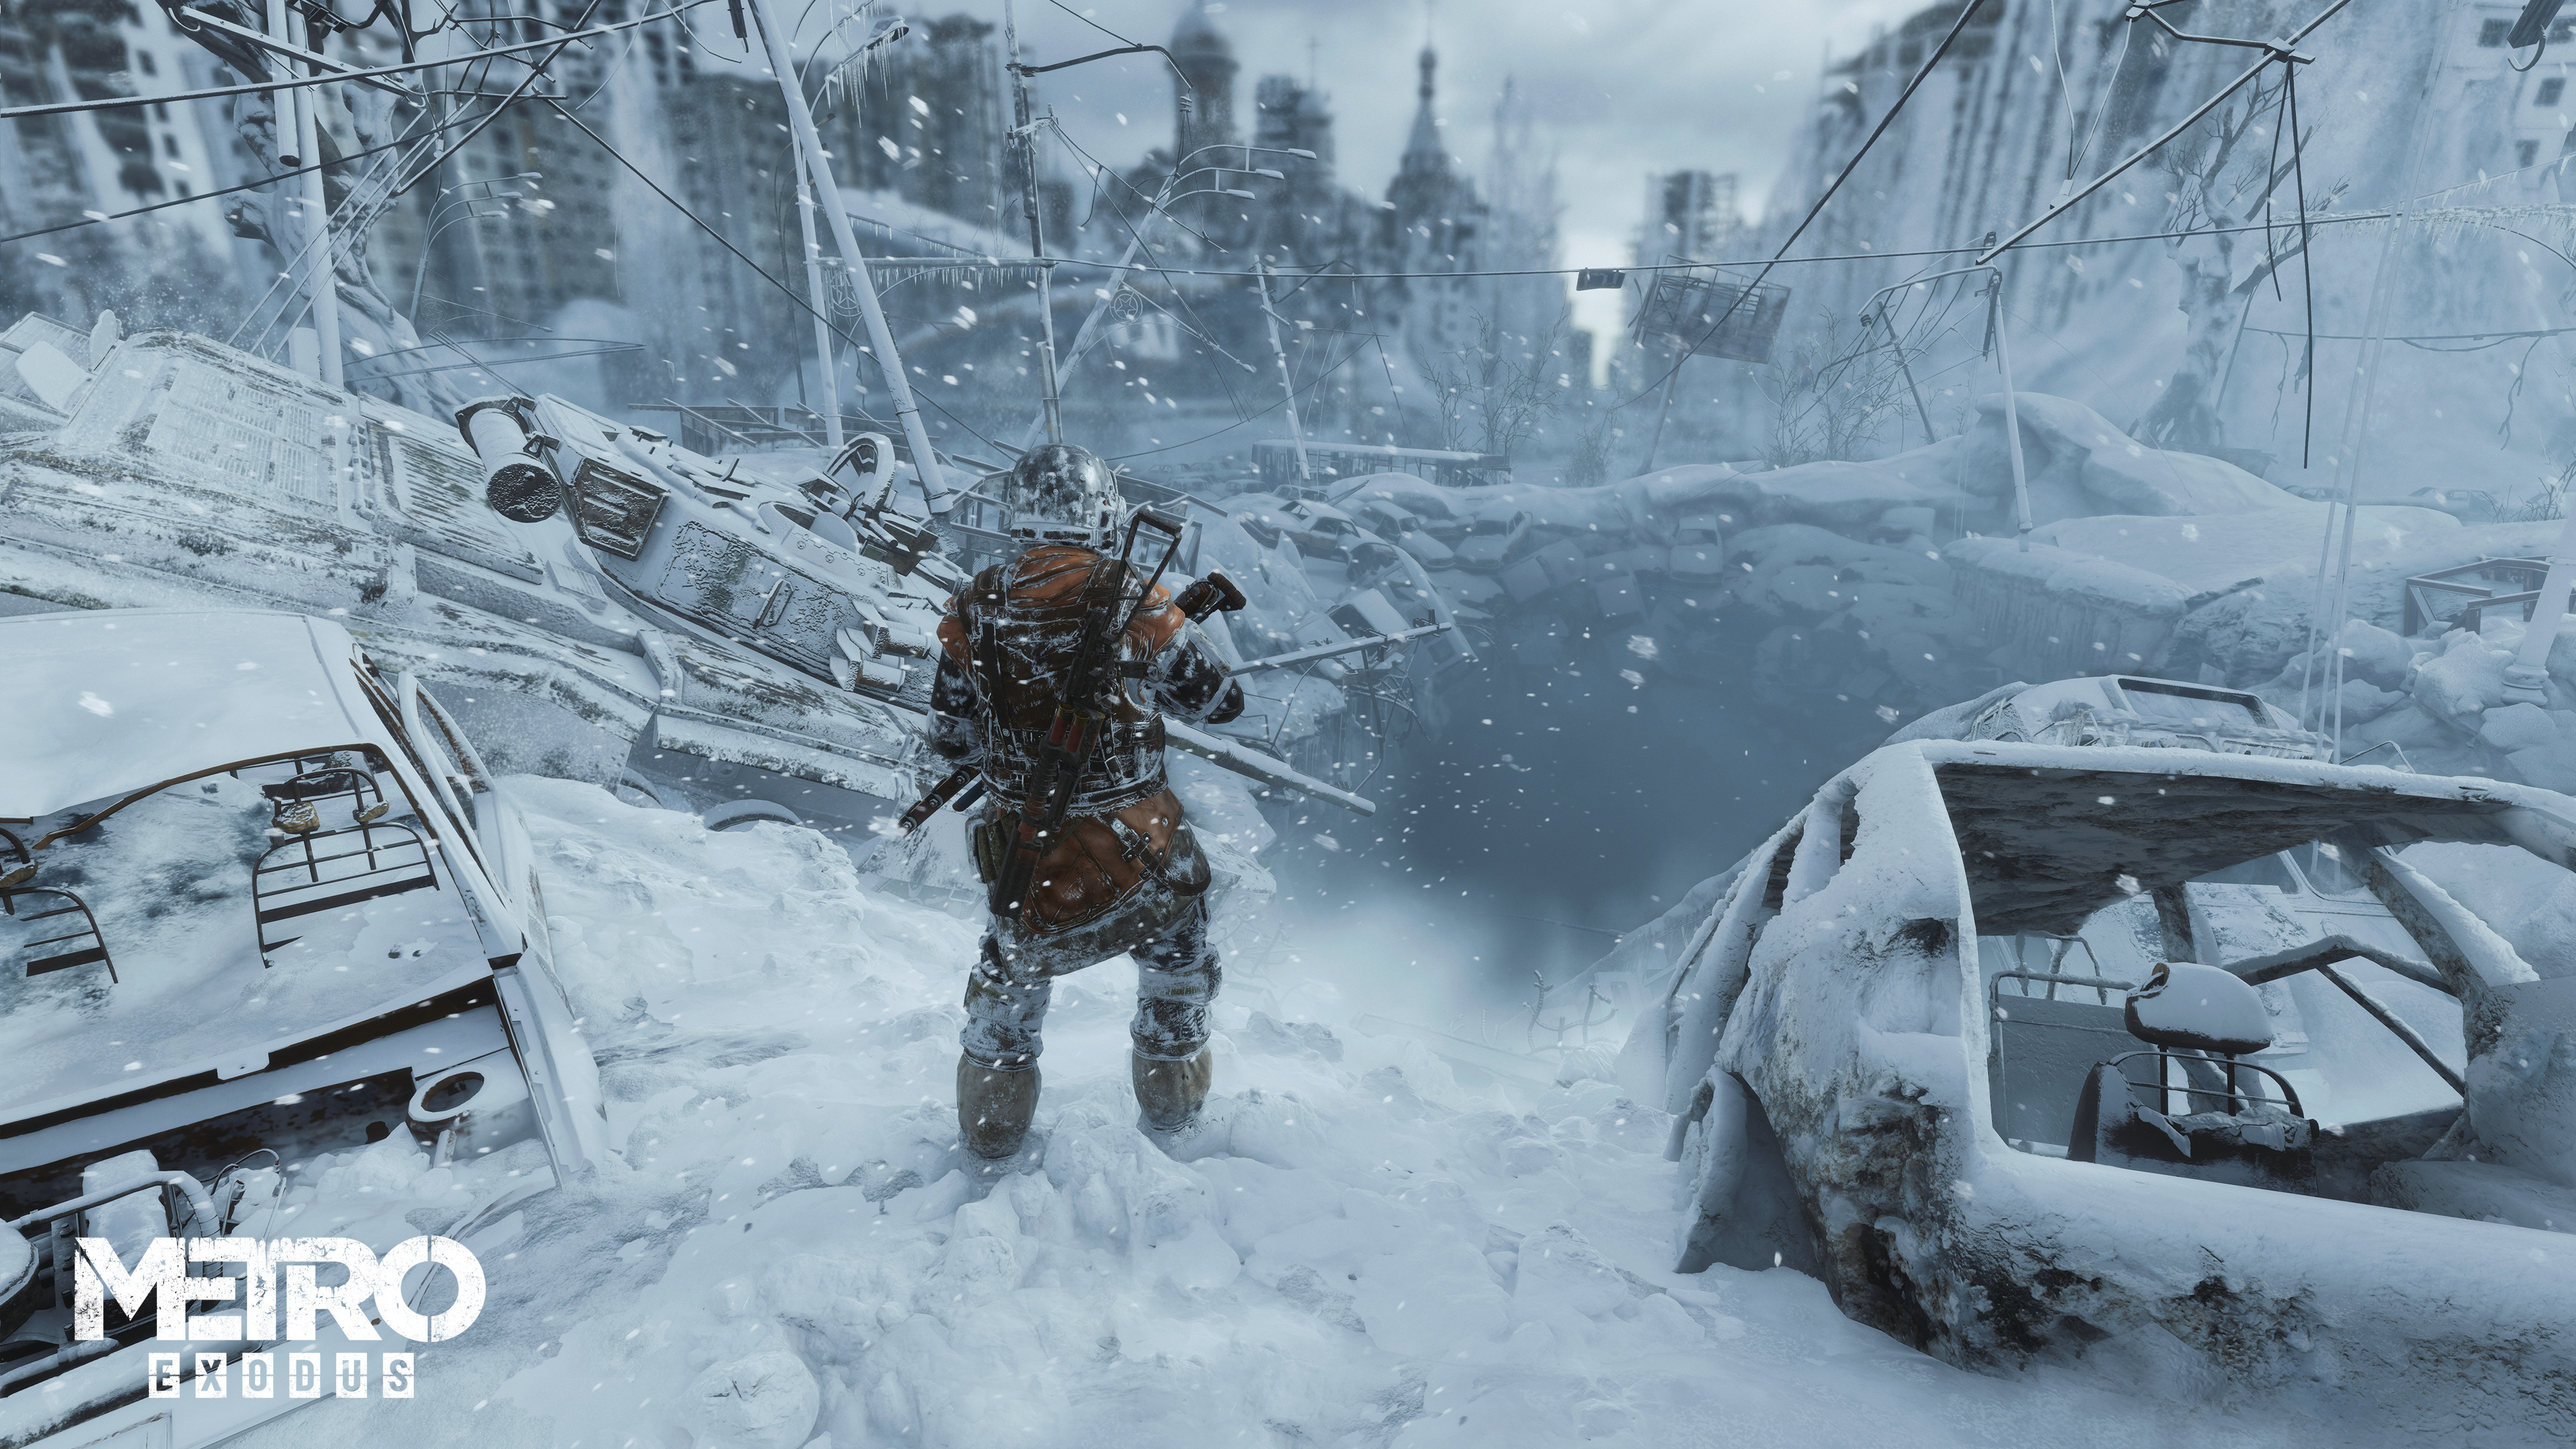 Metro Exodus 2018 4k Hd Games 4k Wallpapers Images Backgrounds Photos And Pictures